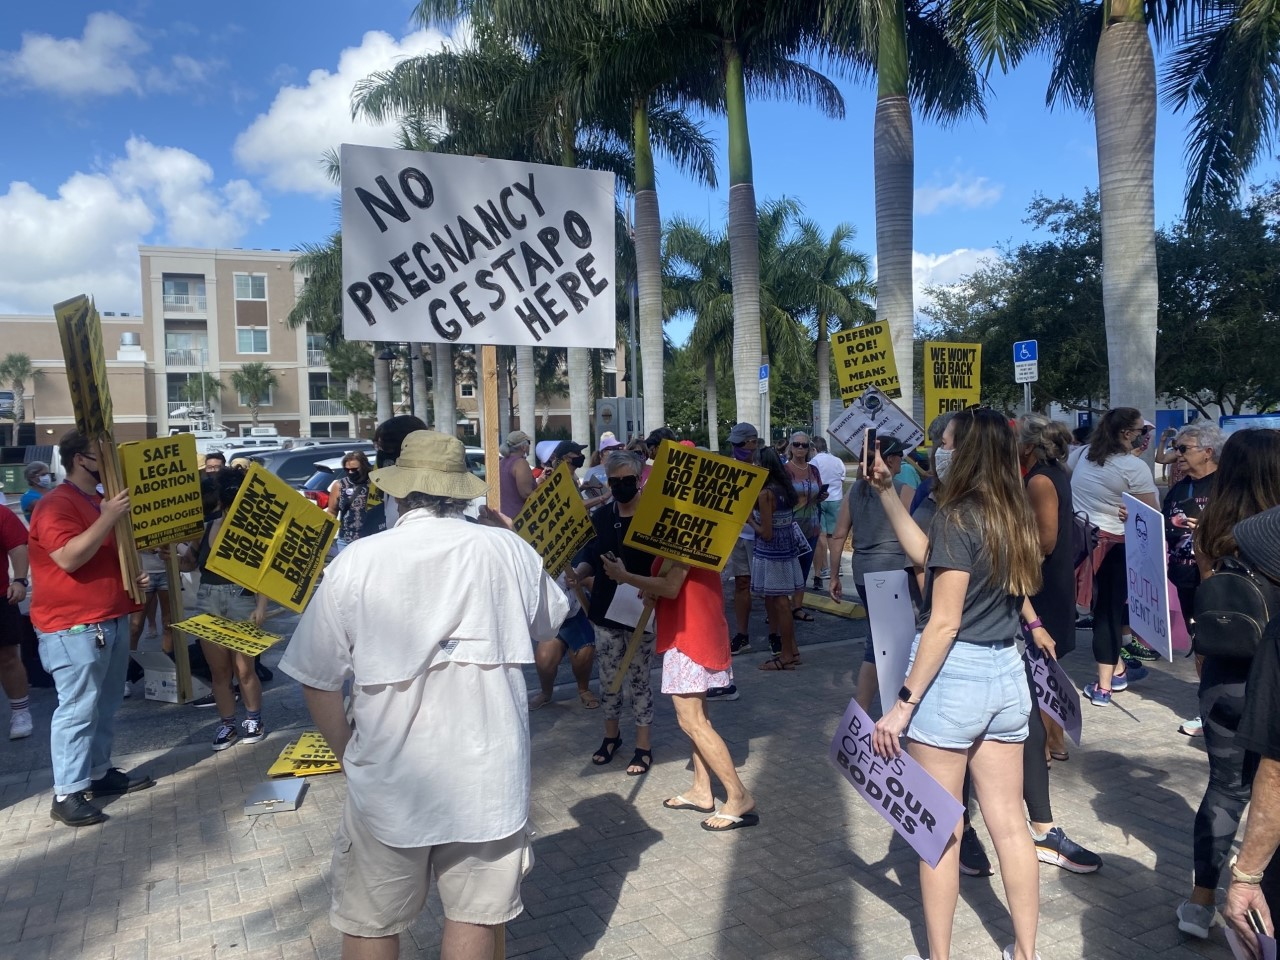 Rallying for reproductive rights in Bradenton, FL